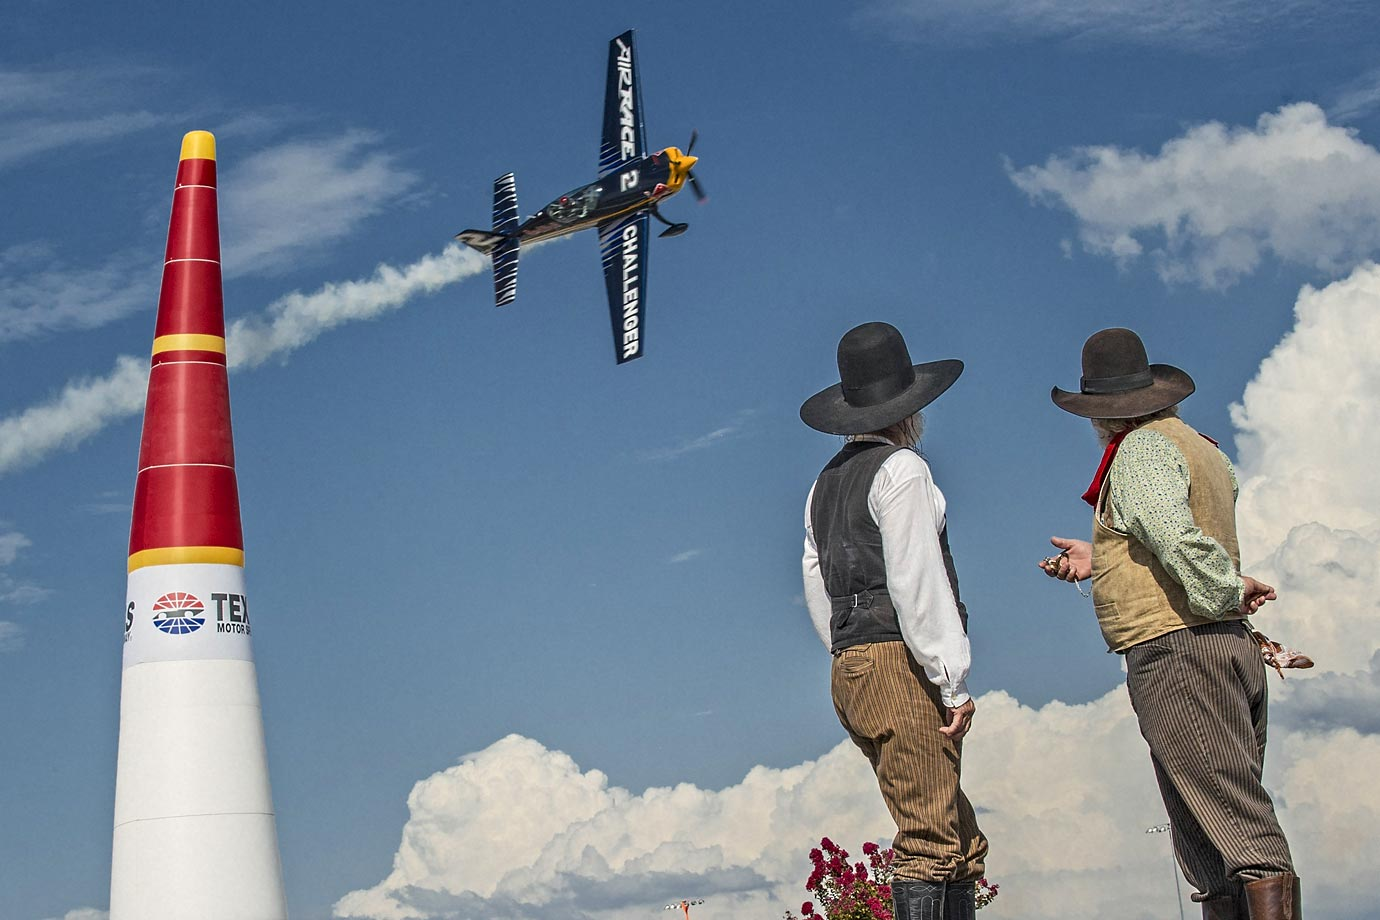 A Challenger pilot performs during the Challengers Cup in Texas.